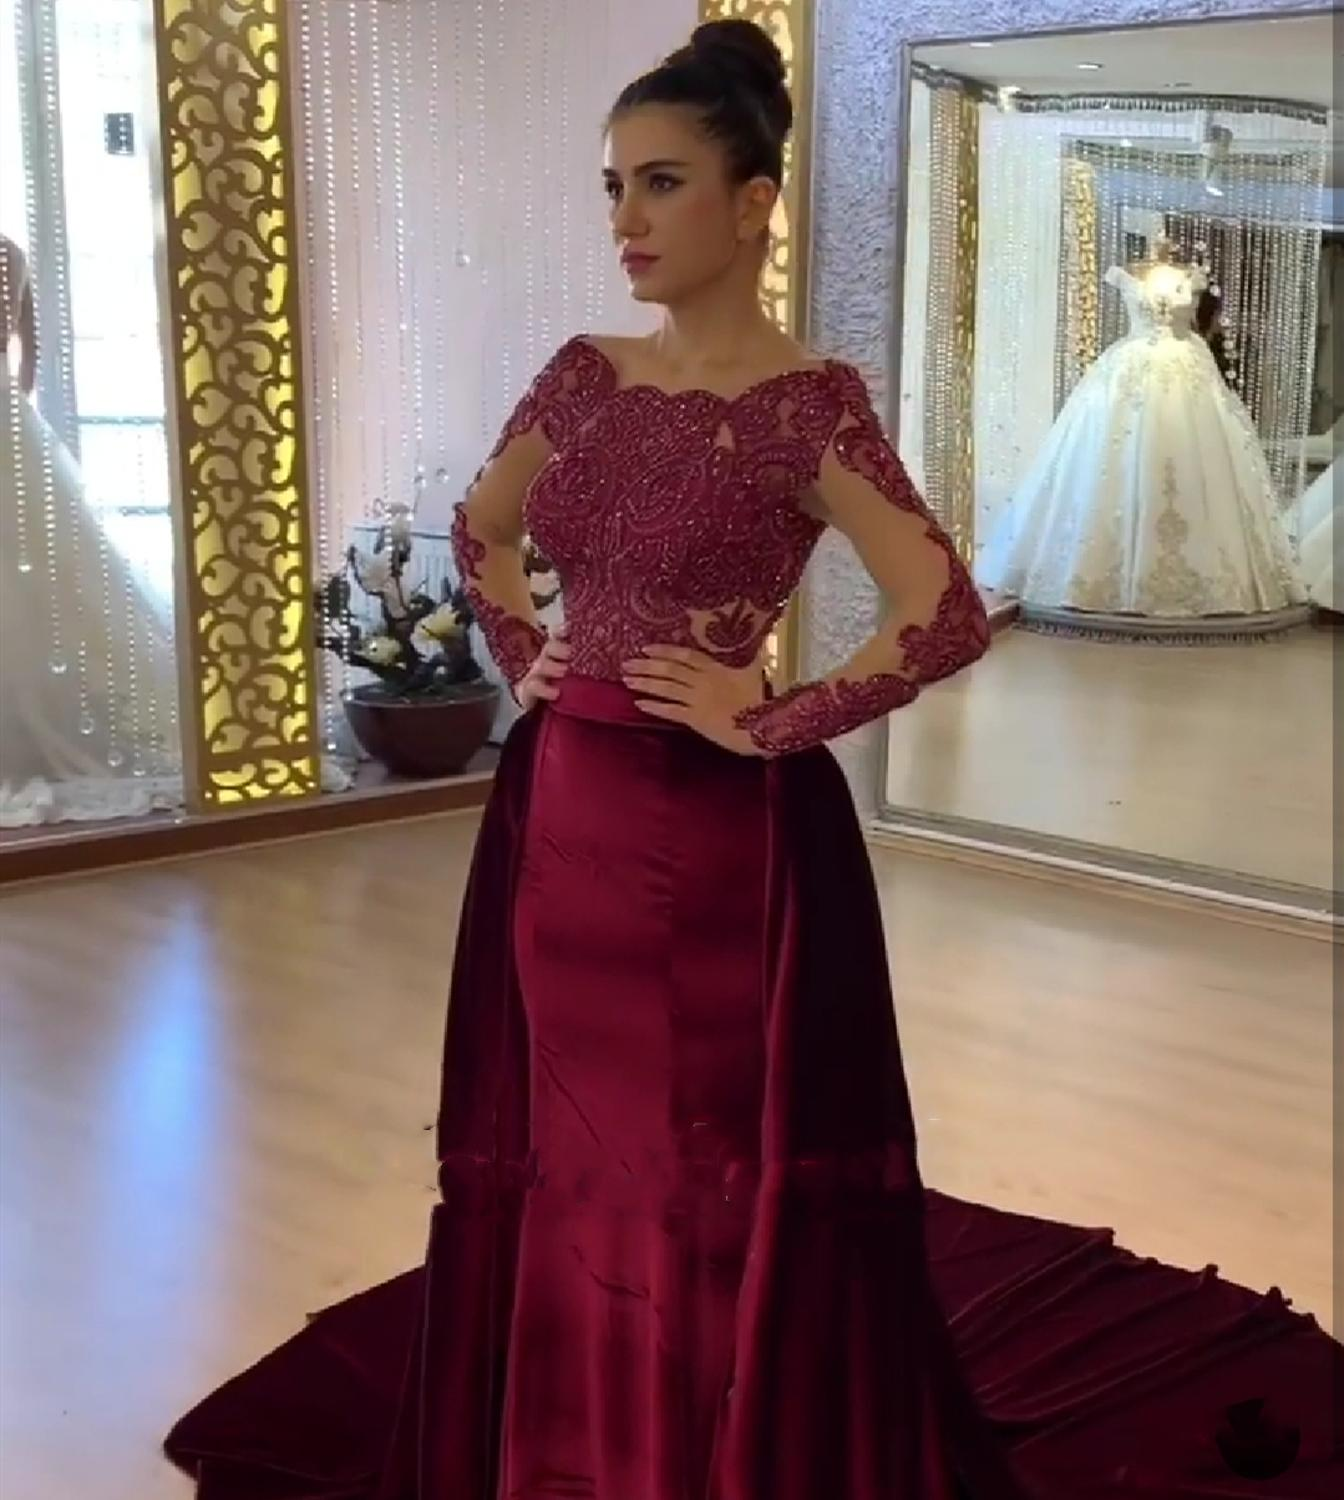 Dress Evening  2019 Mermaid Formal Party Dress For Women Lace Long Sleeve Special Occasion Gown Turkey  Elegant Corporate Dress